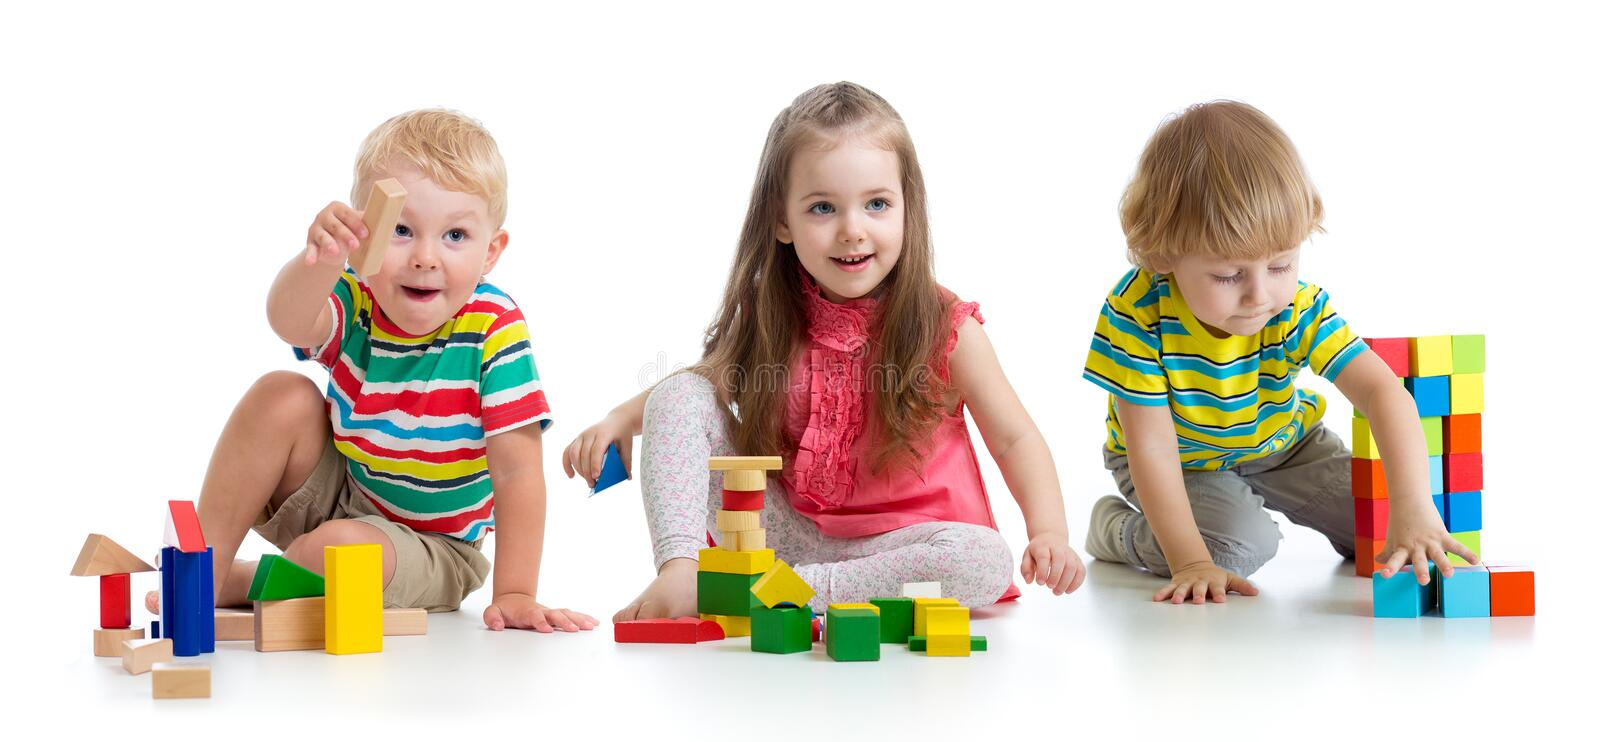 Cute little kids playing with toys or blocks and having fun while sitting on floor isolated over white background stock image